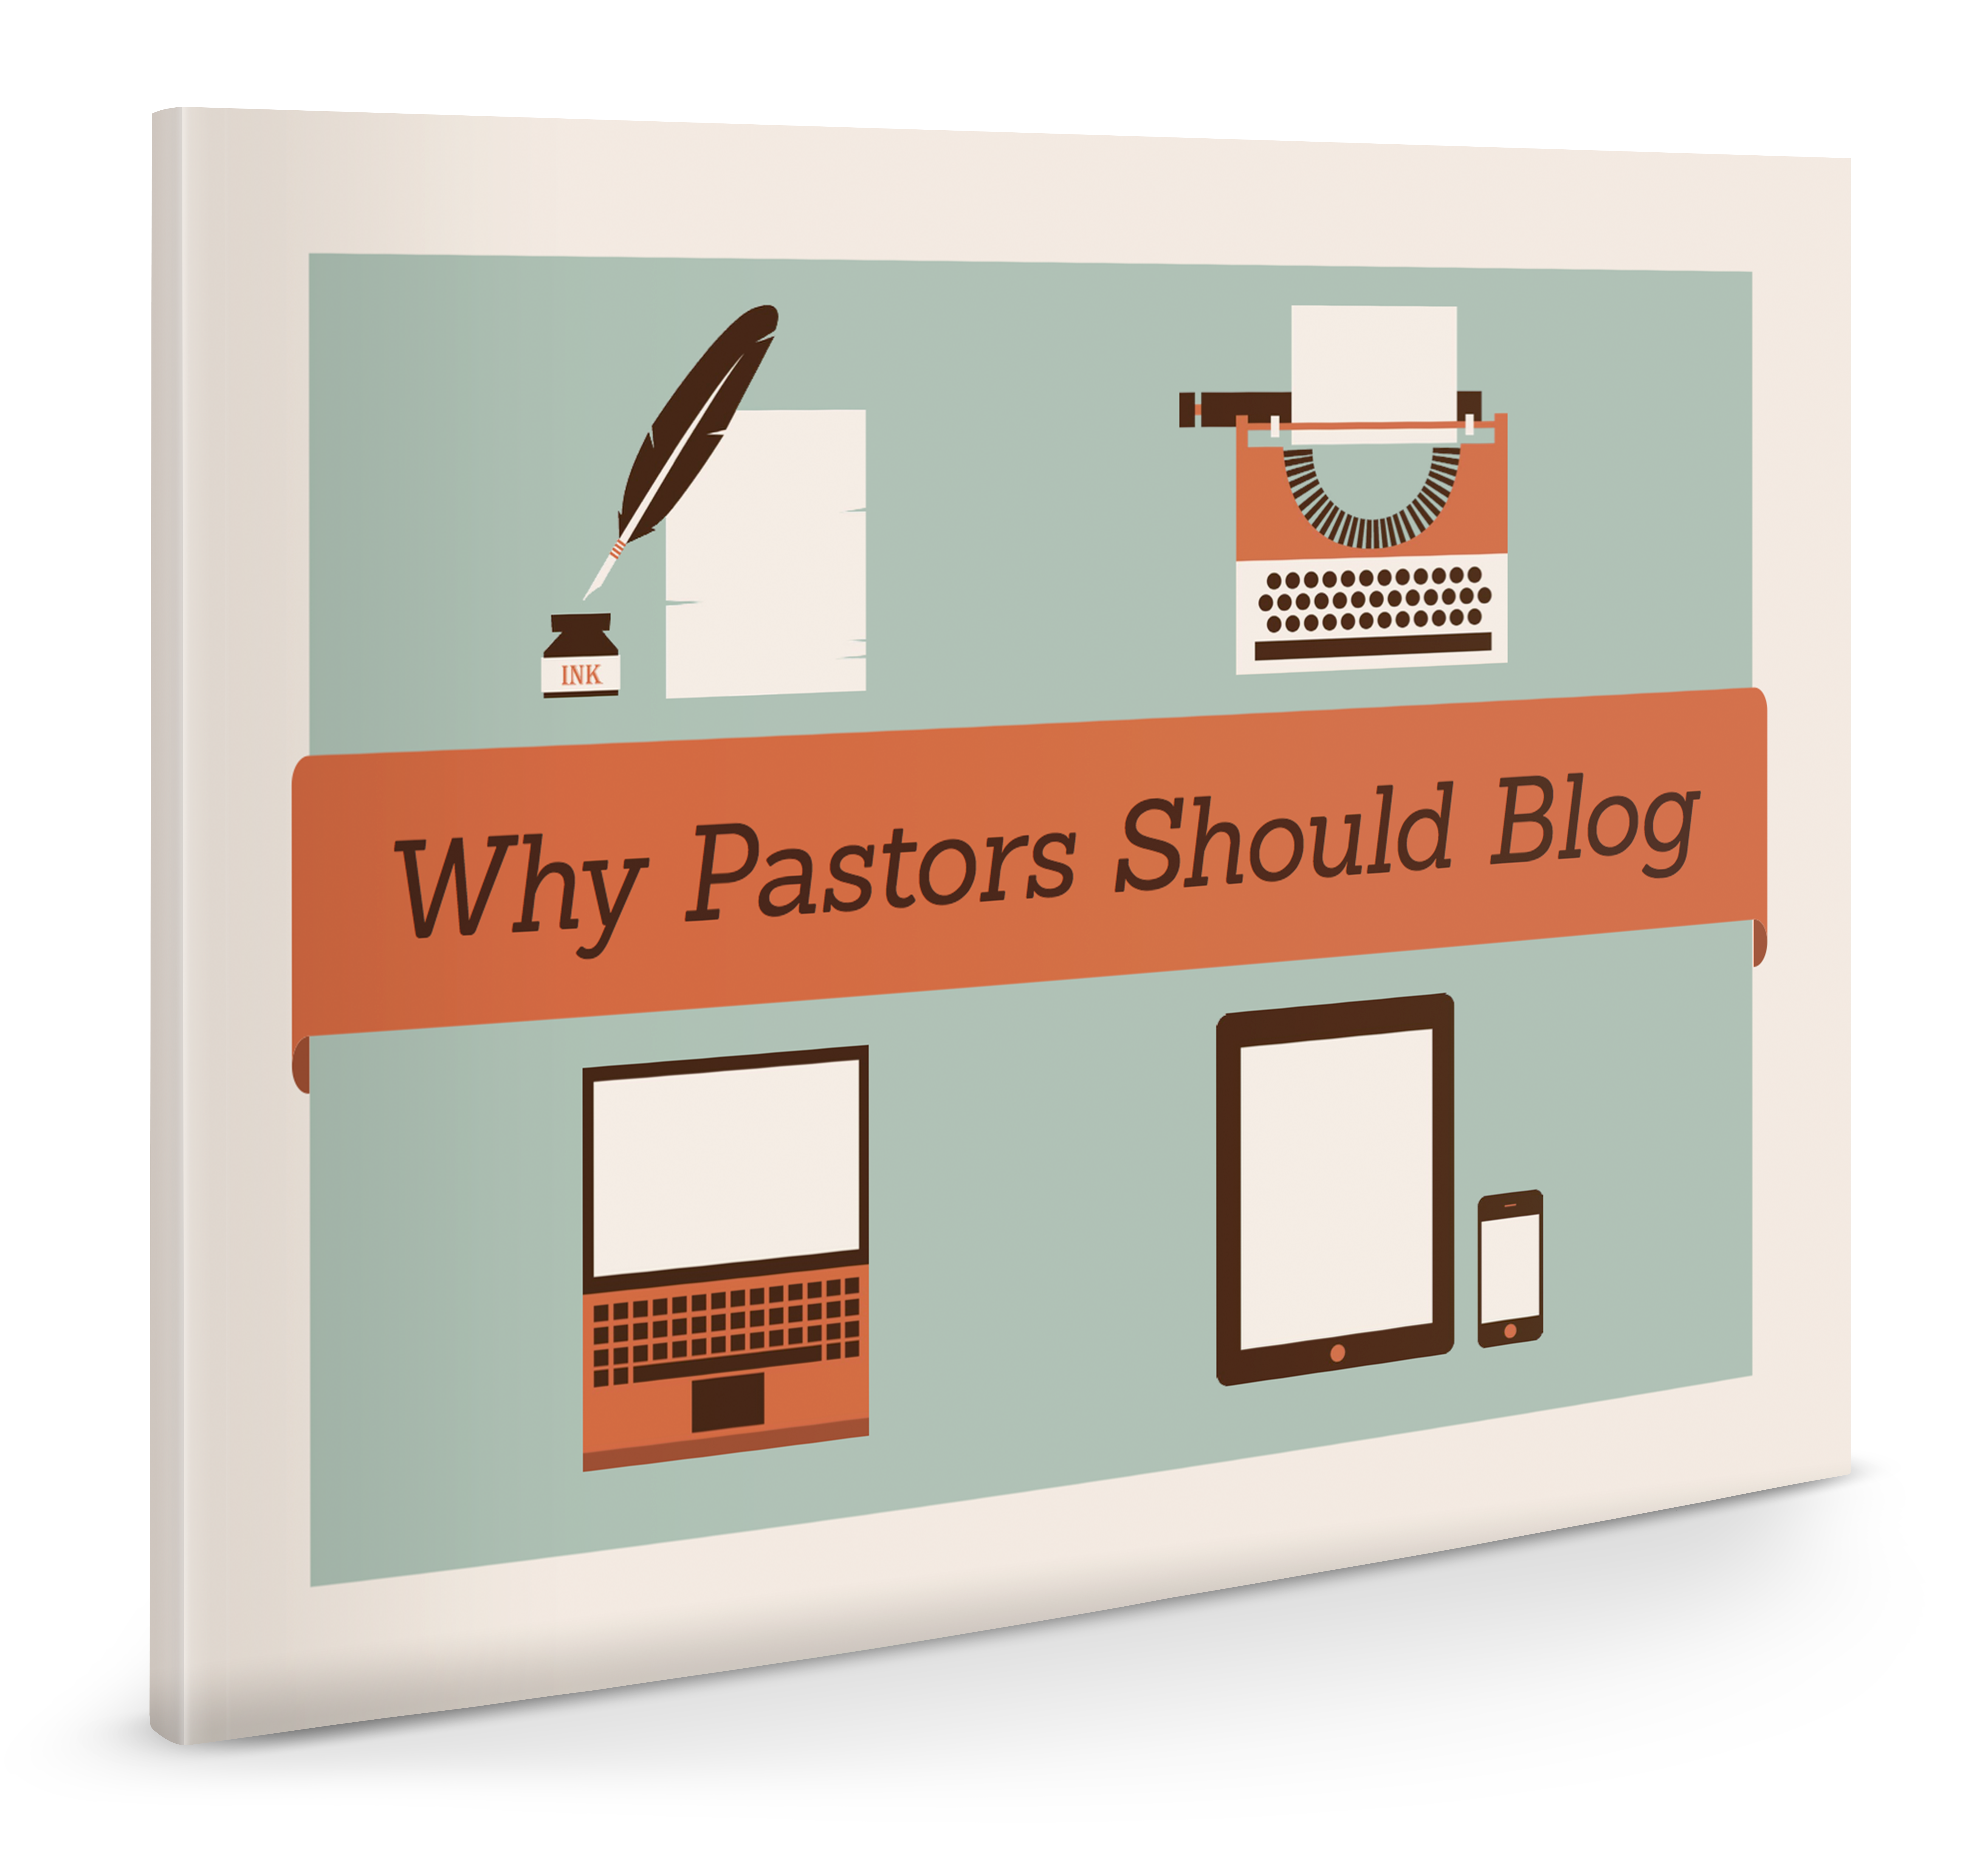 3D_Mockup_-_Why_Pastors_Should_Blog.png